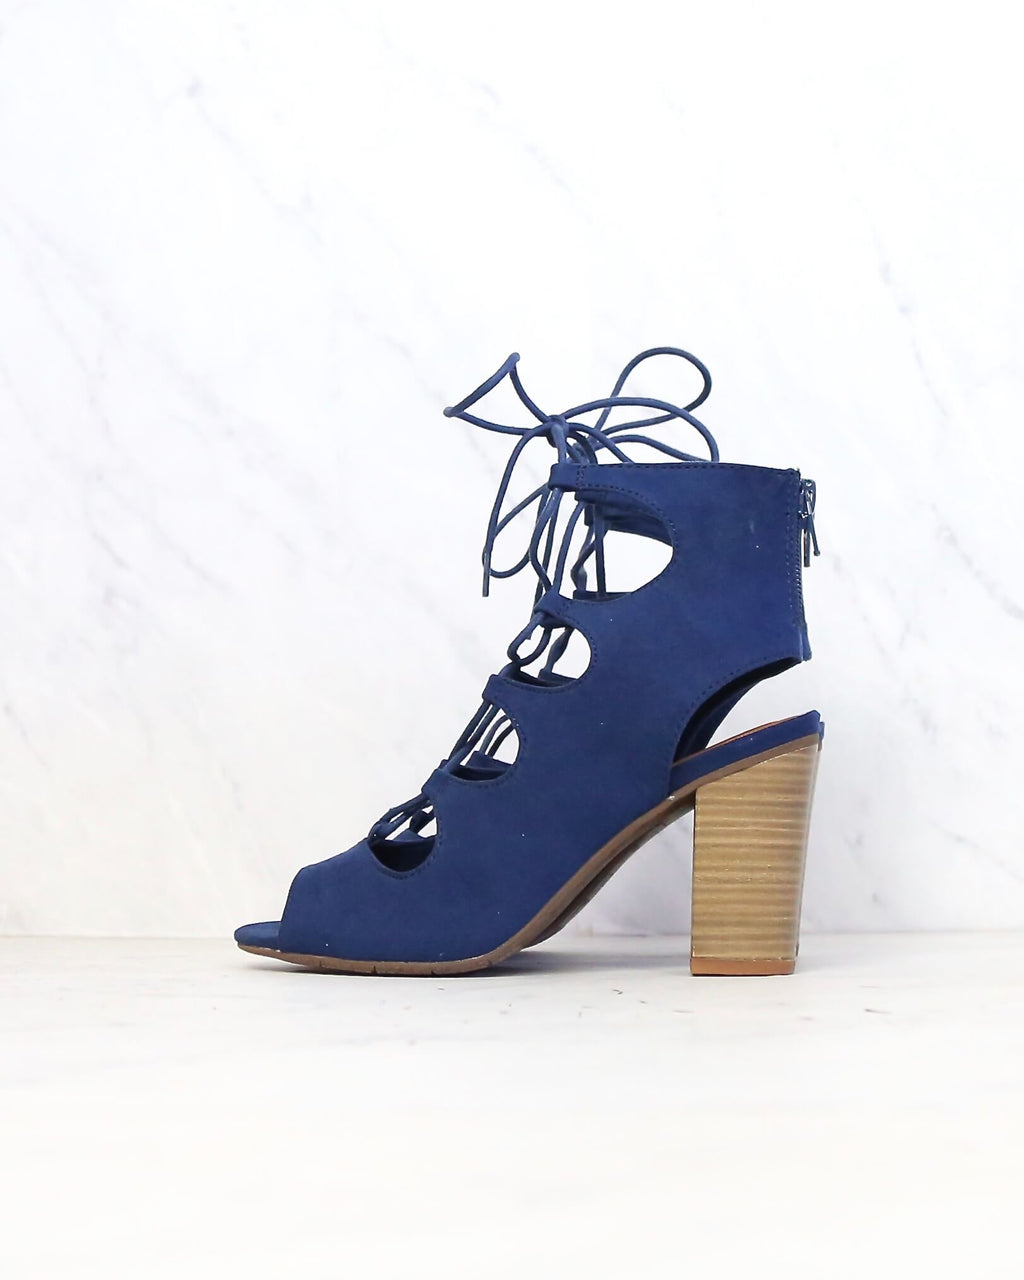 BC Footwear - Vivacious Lace Up Sandals in Indigo